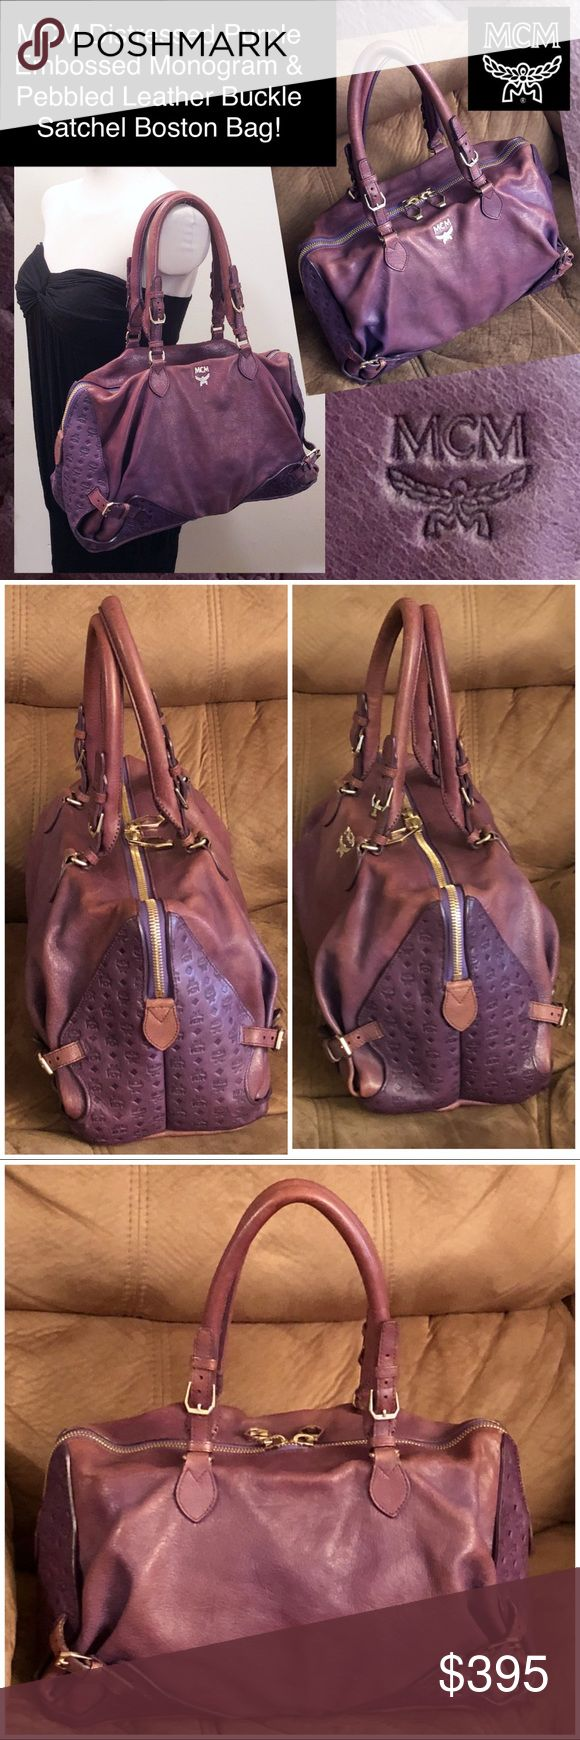 """MCM Embossed Monogram Leather Buckle Boston Bag! MCM Purple Embossed Monogram & Pebbled Leather Buckle Boston Satchel Bag! 100% authentic, """"MCM"""" embossed leather monogram & pebbled leather 2-tone purple design, rolled/adj (up to 12"""") top handles, 2 top zip closures, gold-tone MCM hw, suede like lining, 1 zip pocket, 1 snap pocket, 2 slip pockets, adj belted corners, MCM int stamp & white authenticity tag on int pocket, bottom feet. Ret:$1,220. 14""""L x 8.5""""H x 6.5""""W. Some int pen marks…"""